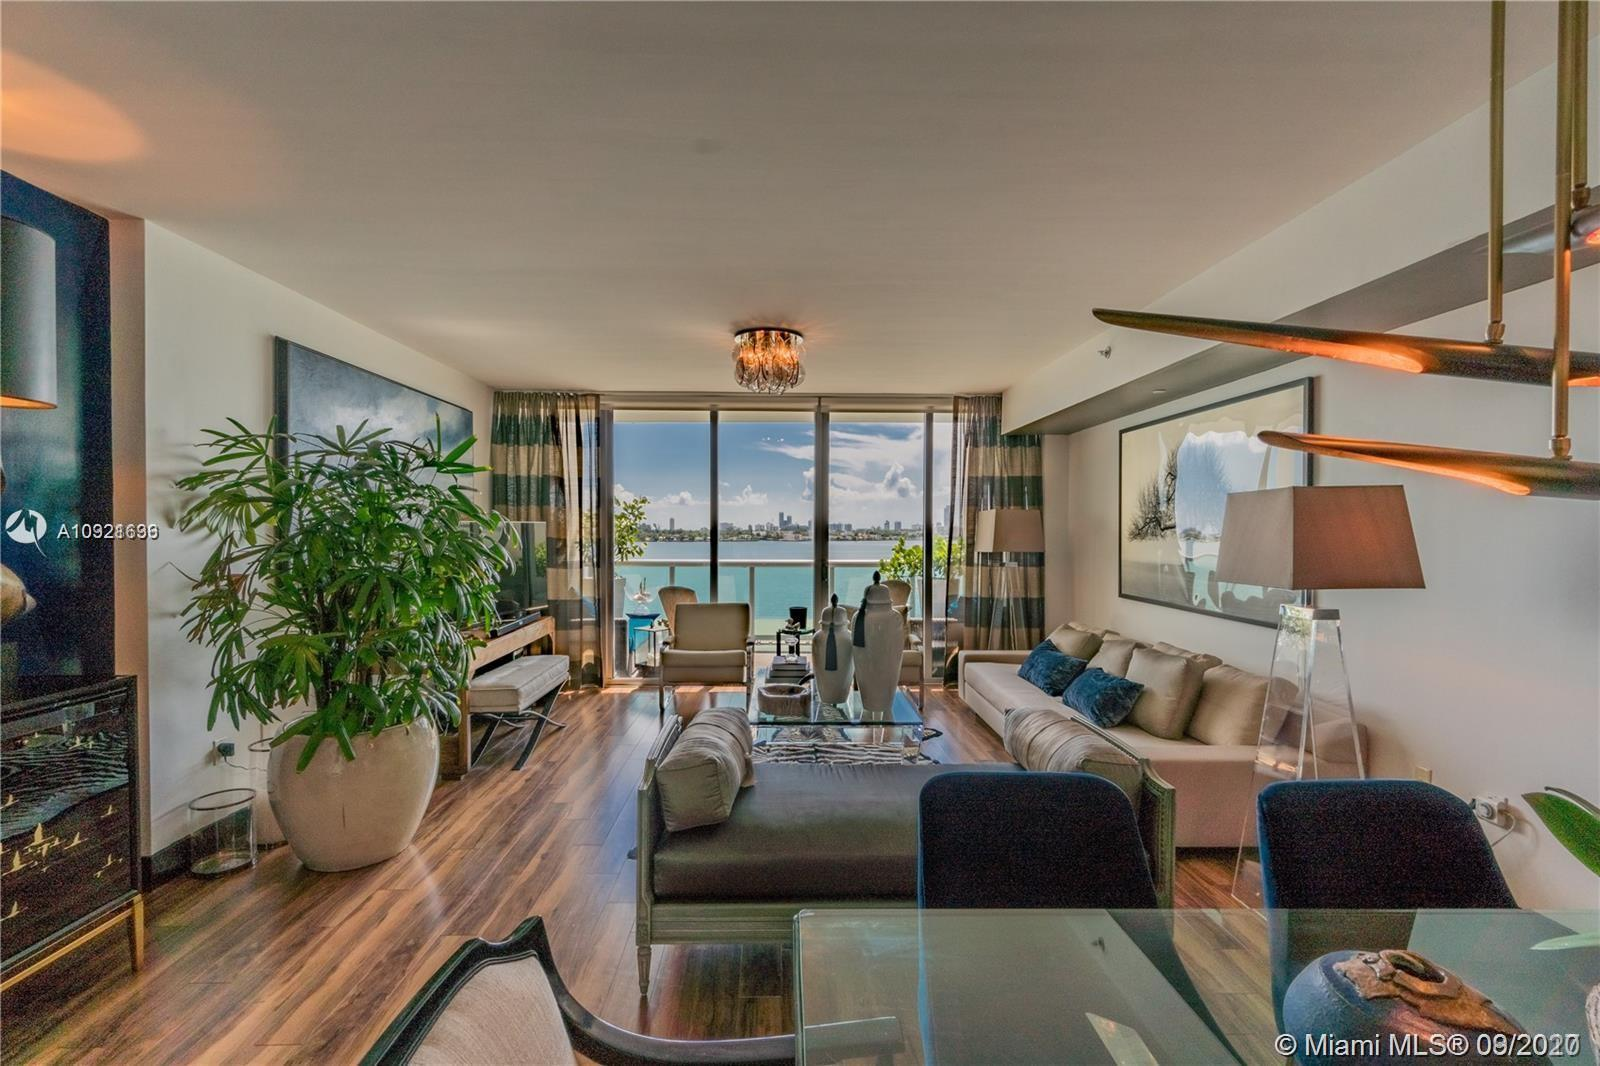 DIRECT WATER VIEWS FROM THIS SPACIOUS 2 BEDROOM + DEN TWO LEVEL UNIT AT CIELO ON THE BAY. BEST PRICE